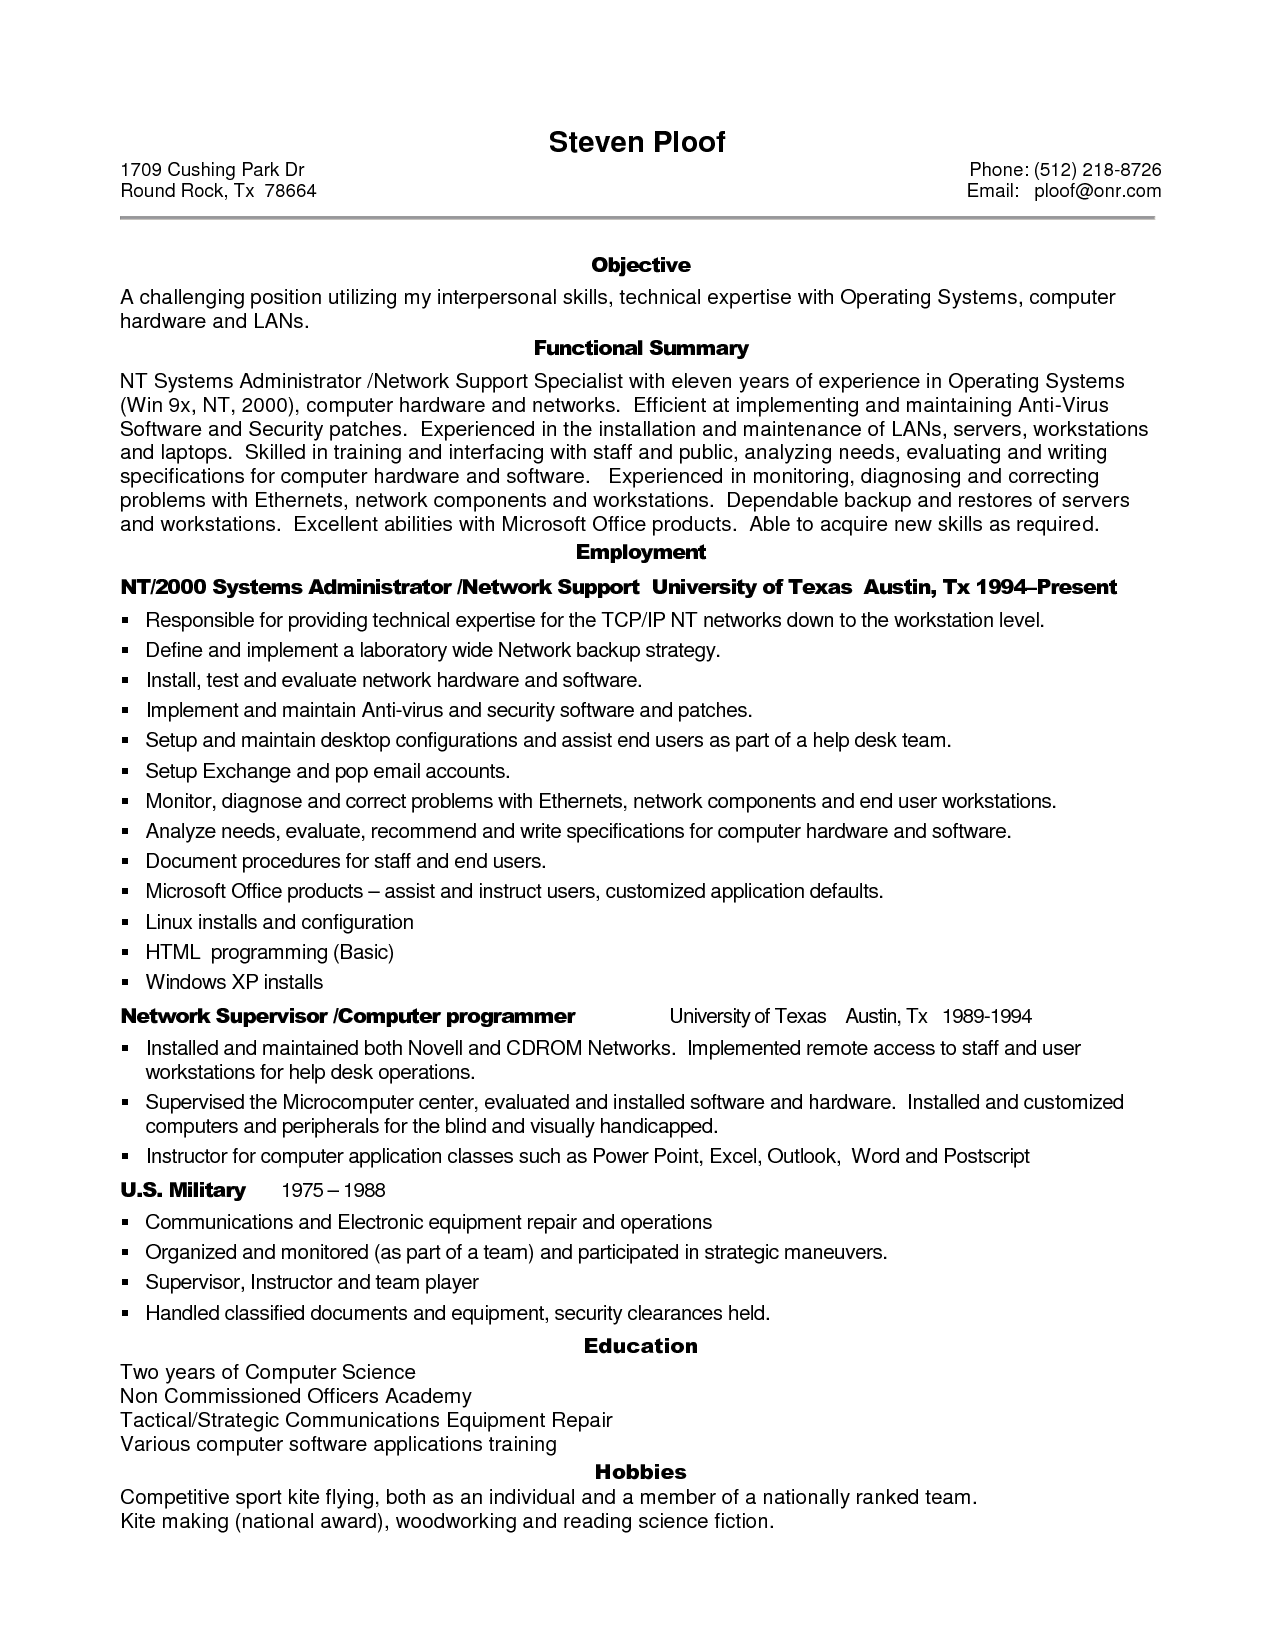 sample resume for experienced it professional sample resume for experienced it professional resume tips for - Apple Hardware Engineer Sample Resume